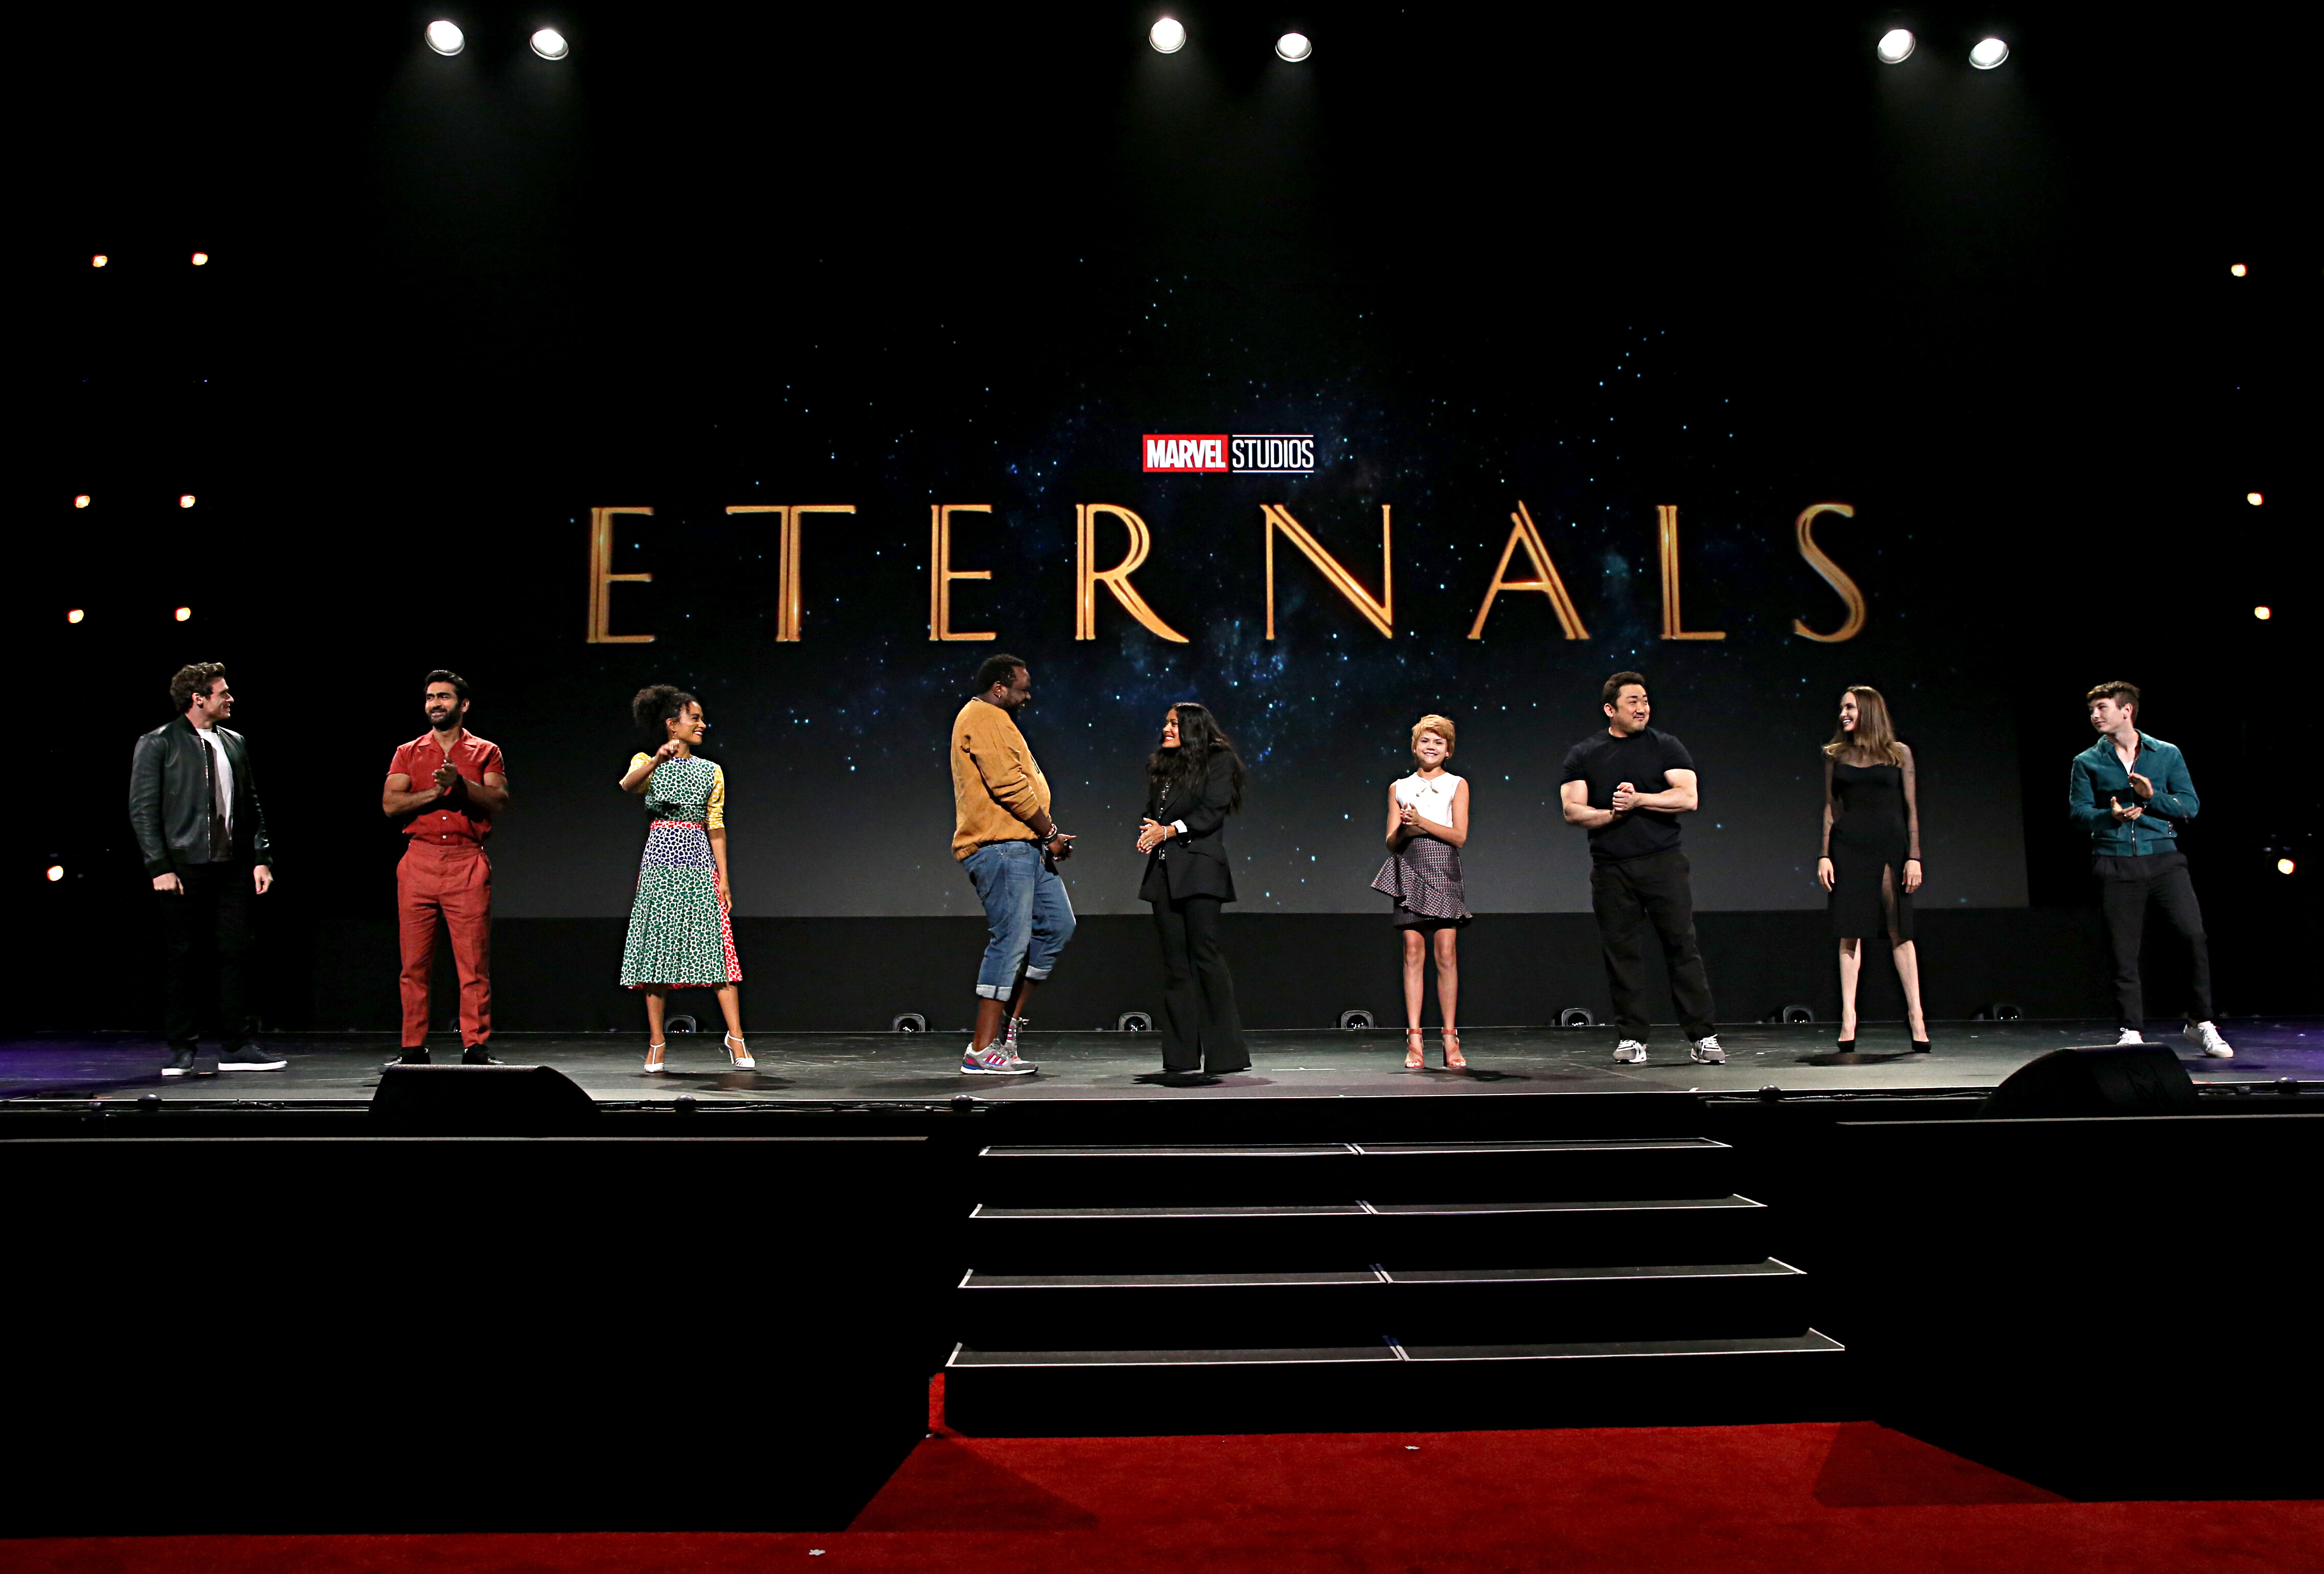 ANAHEIM, CALIFORNIA - AUGUST 24: (L-R) Richard Madden, Kumail Nanjiani, Lauren Ridloff, Salma Hayek, Lia McHugh, Don Lee, Angelina Jolie, and Barry Keoghan of 'The Eternals' took part today in the Walt Disney Studios presentation at Disney's D23 EXPO 2019 in Anaheim, Calif. 'The Eternals' will be released in U.S. theaters on November 6, 2020. (Photo by Jesse Grant/Getty Images for Disney)